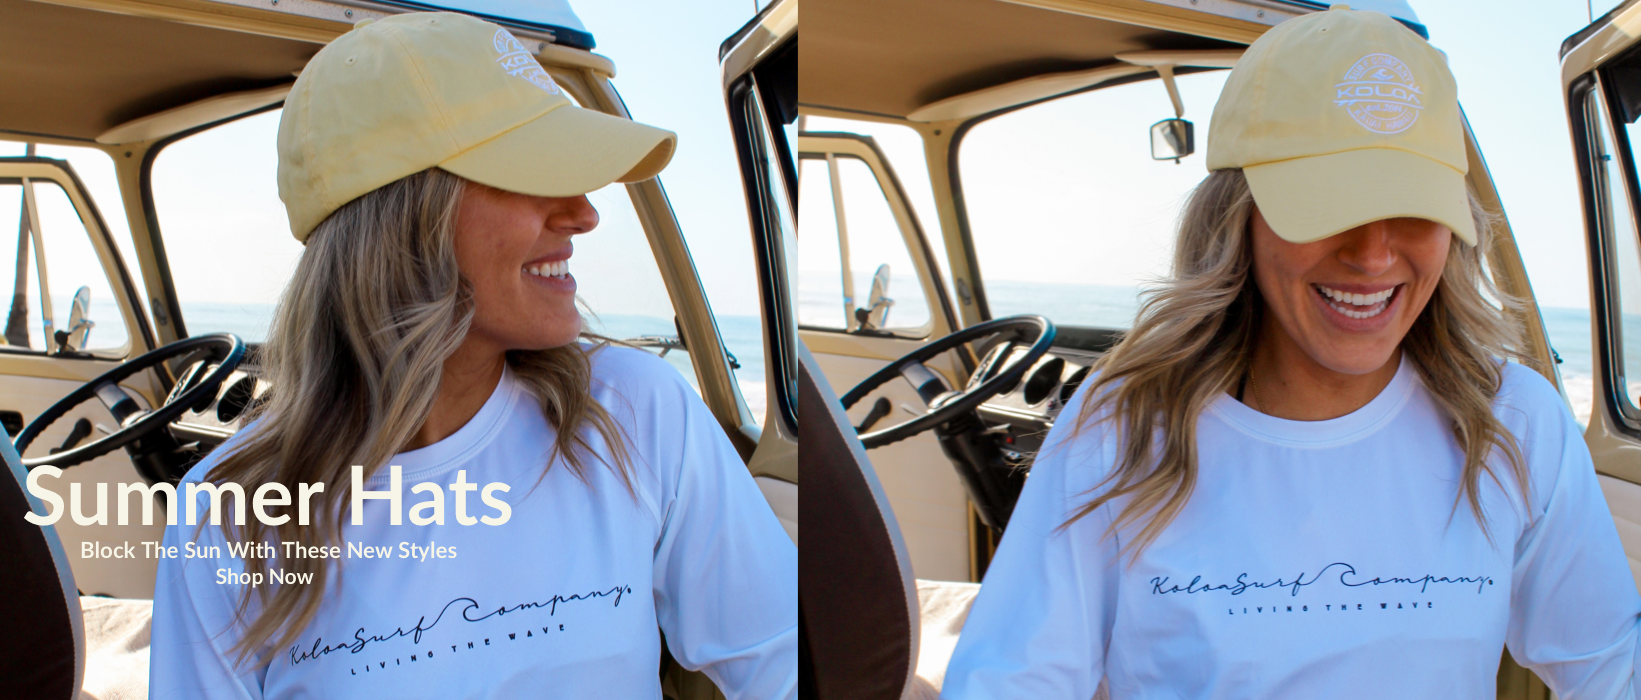 Summer Hats Just For You. Block The Sun With These New Styles.